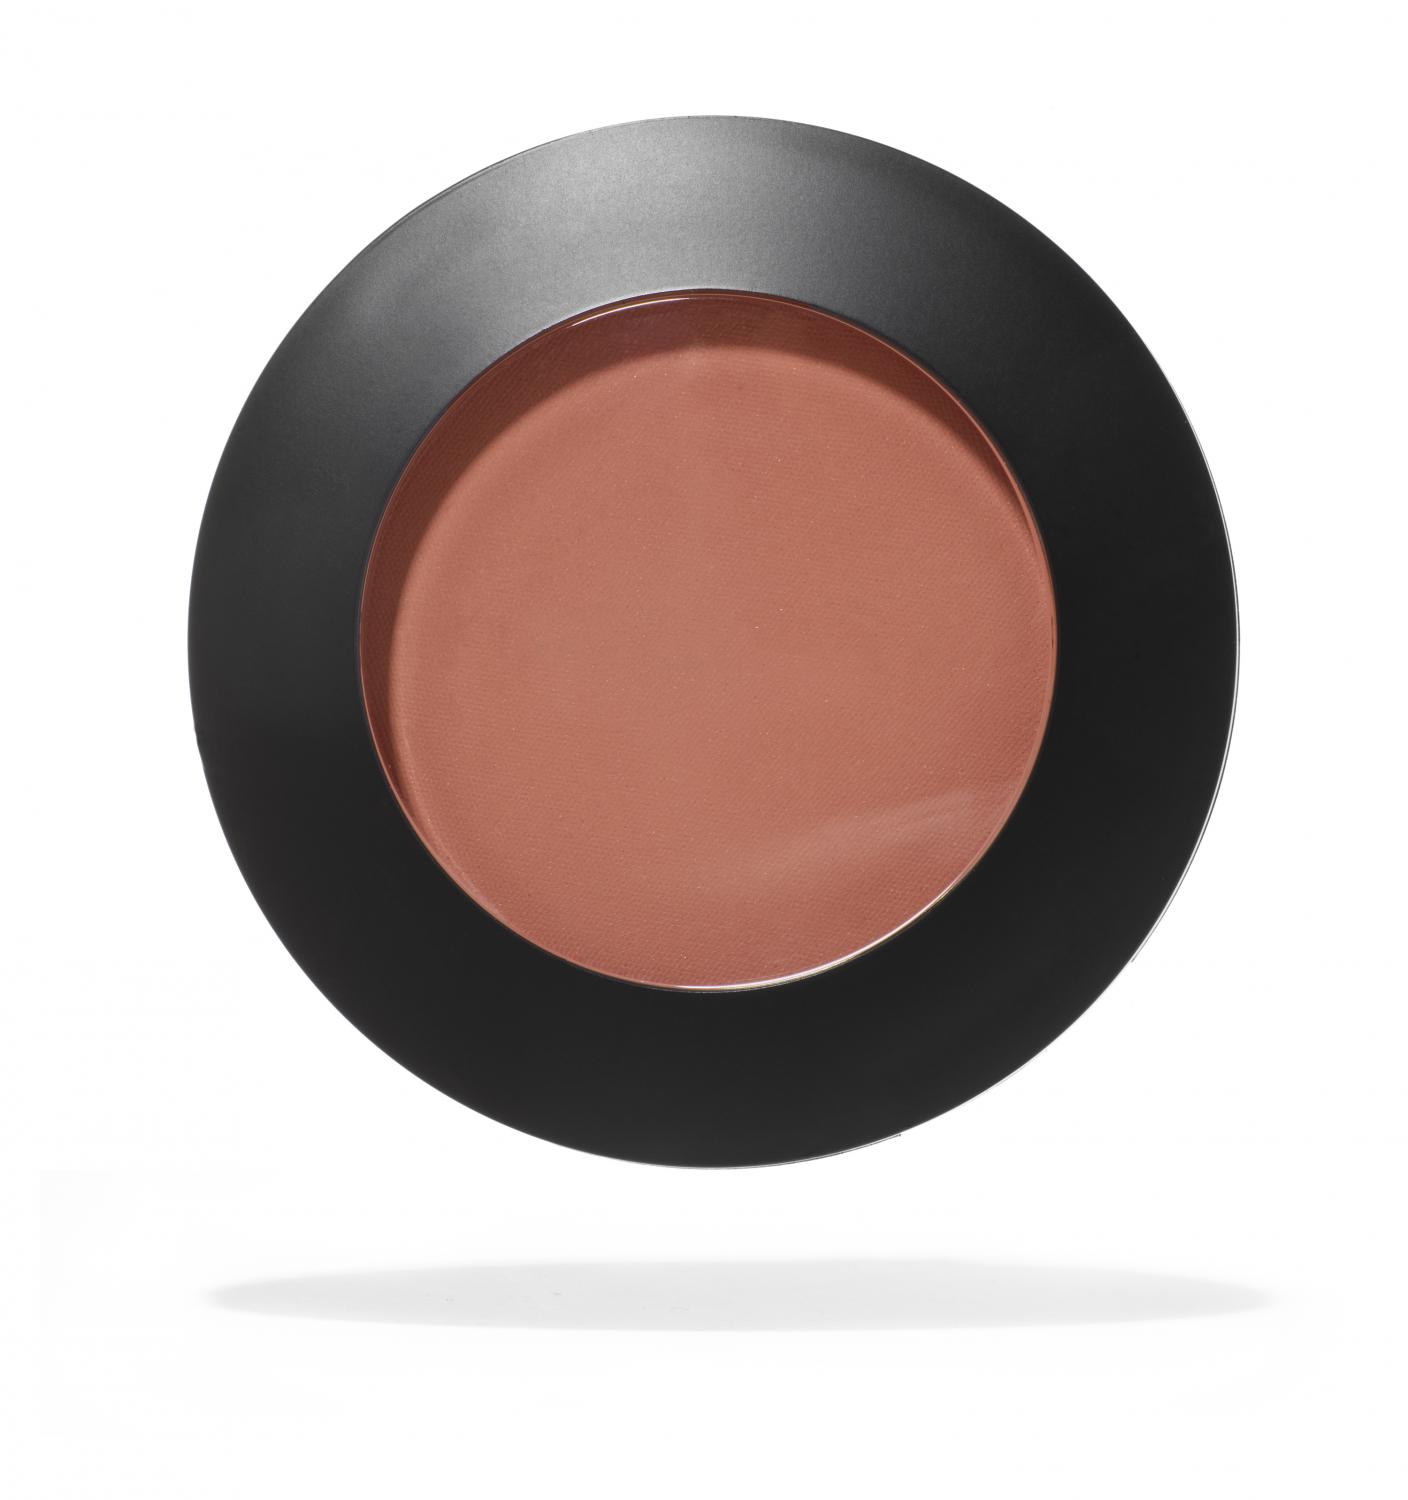 MAGN - MICRONIZED POWDER BLUSH